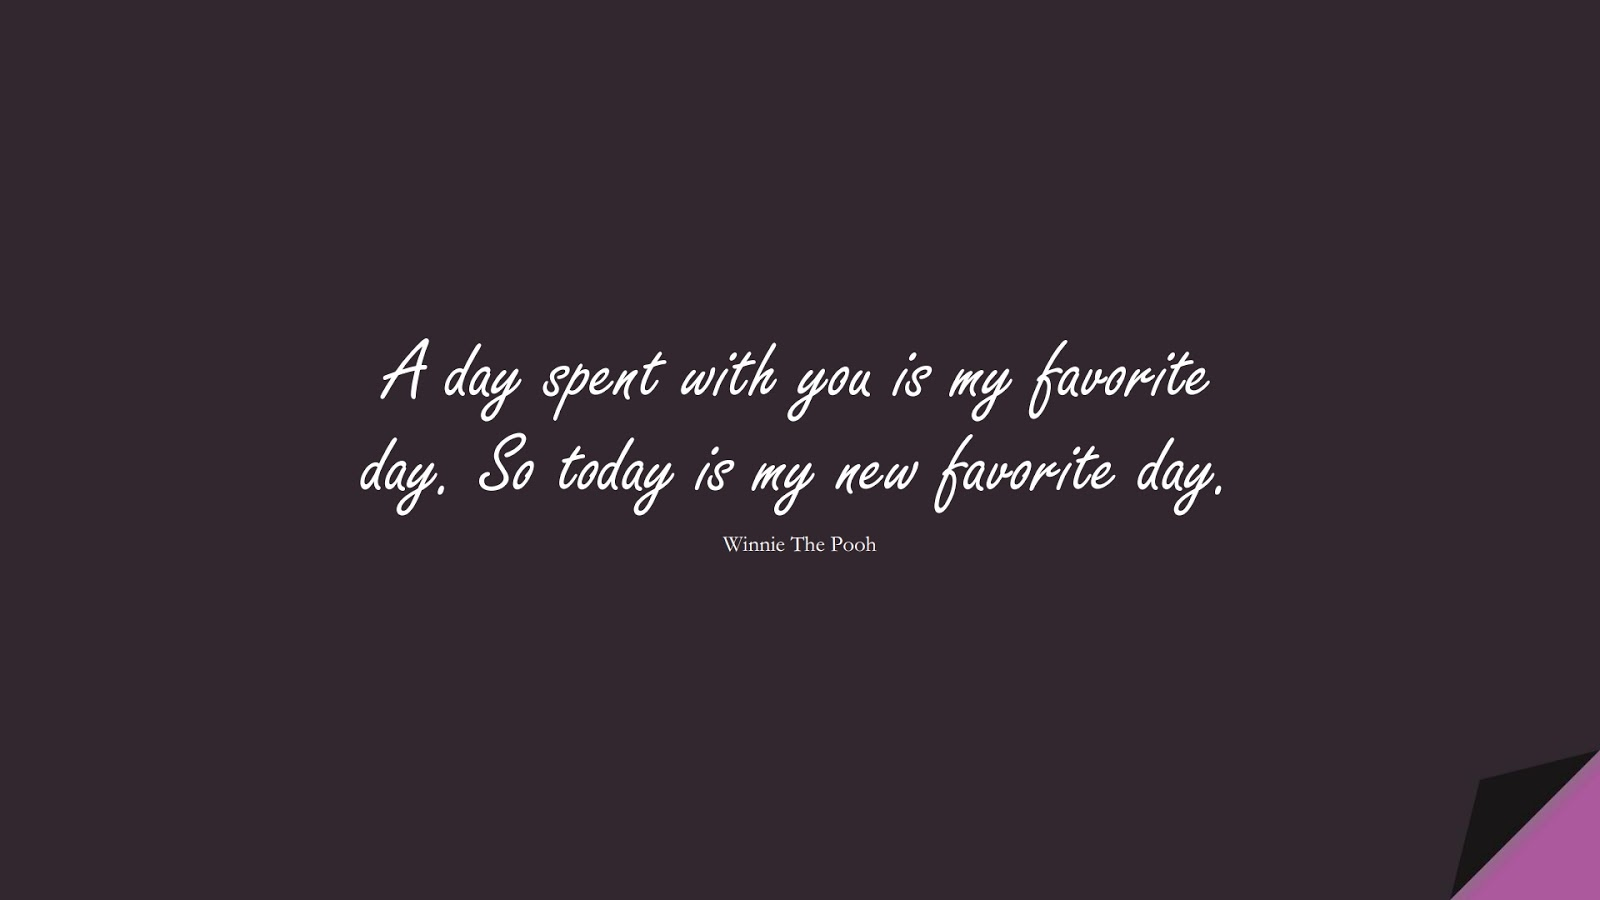 A day spent with you is my favorite day. So today is my new favorite day. (Winnie The Pooh);  #FriendshipQuotes